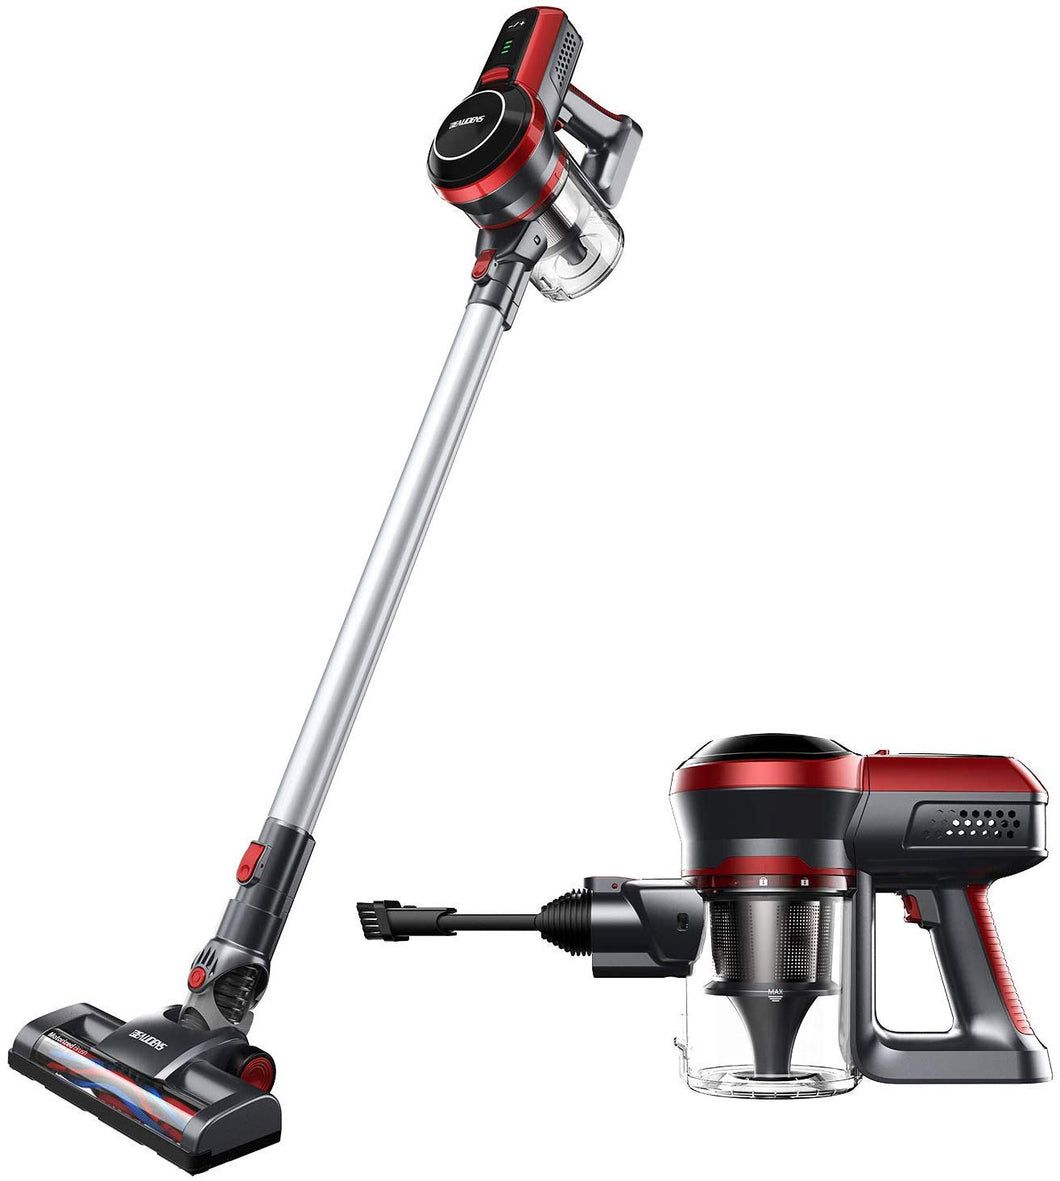 BEAUDENS Broom Vacuum Cleaner